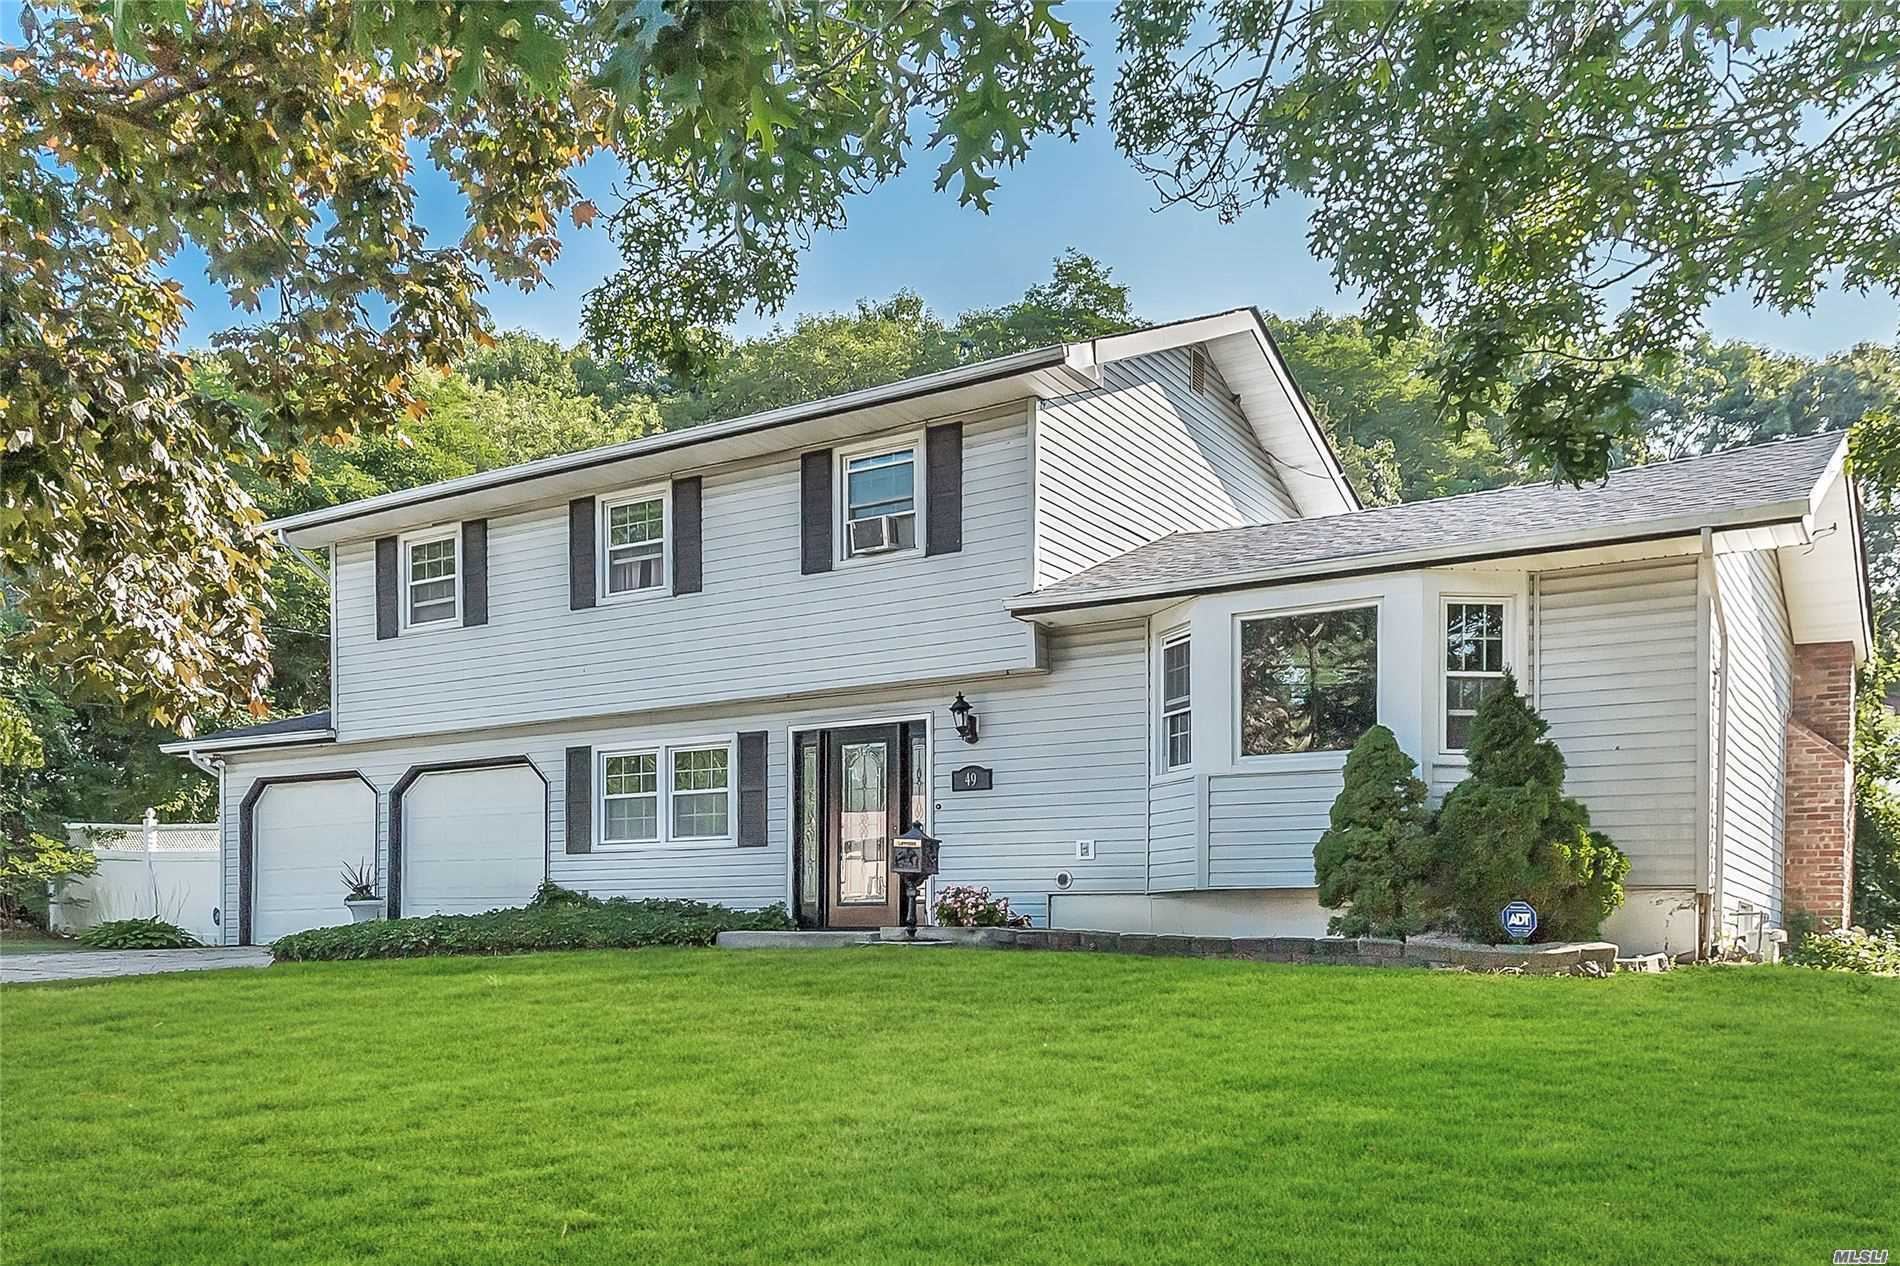 49 Willow St - Wheatley Heights, New York